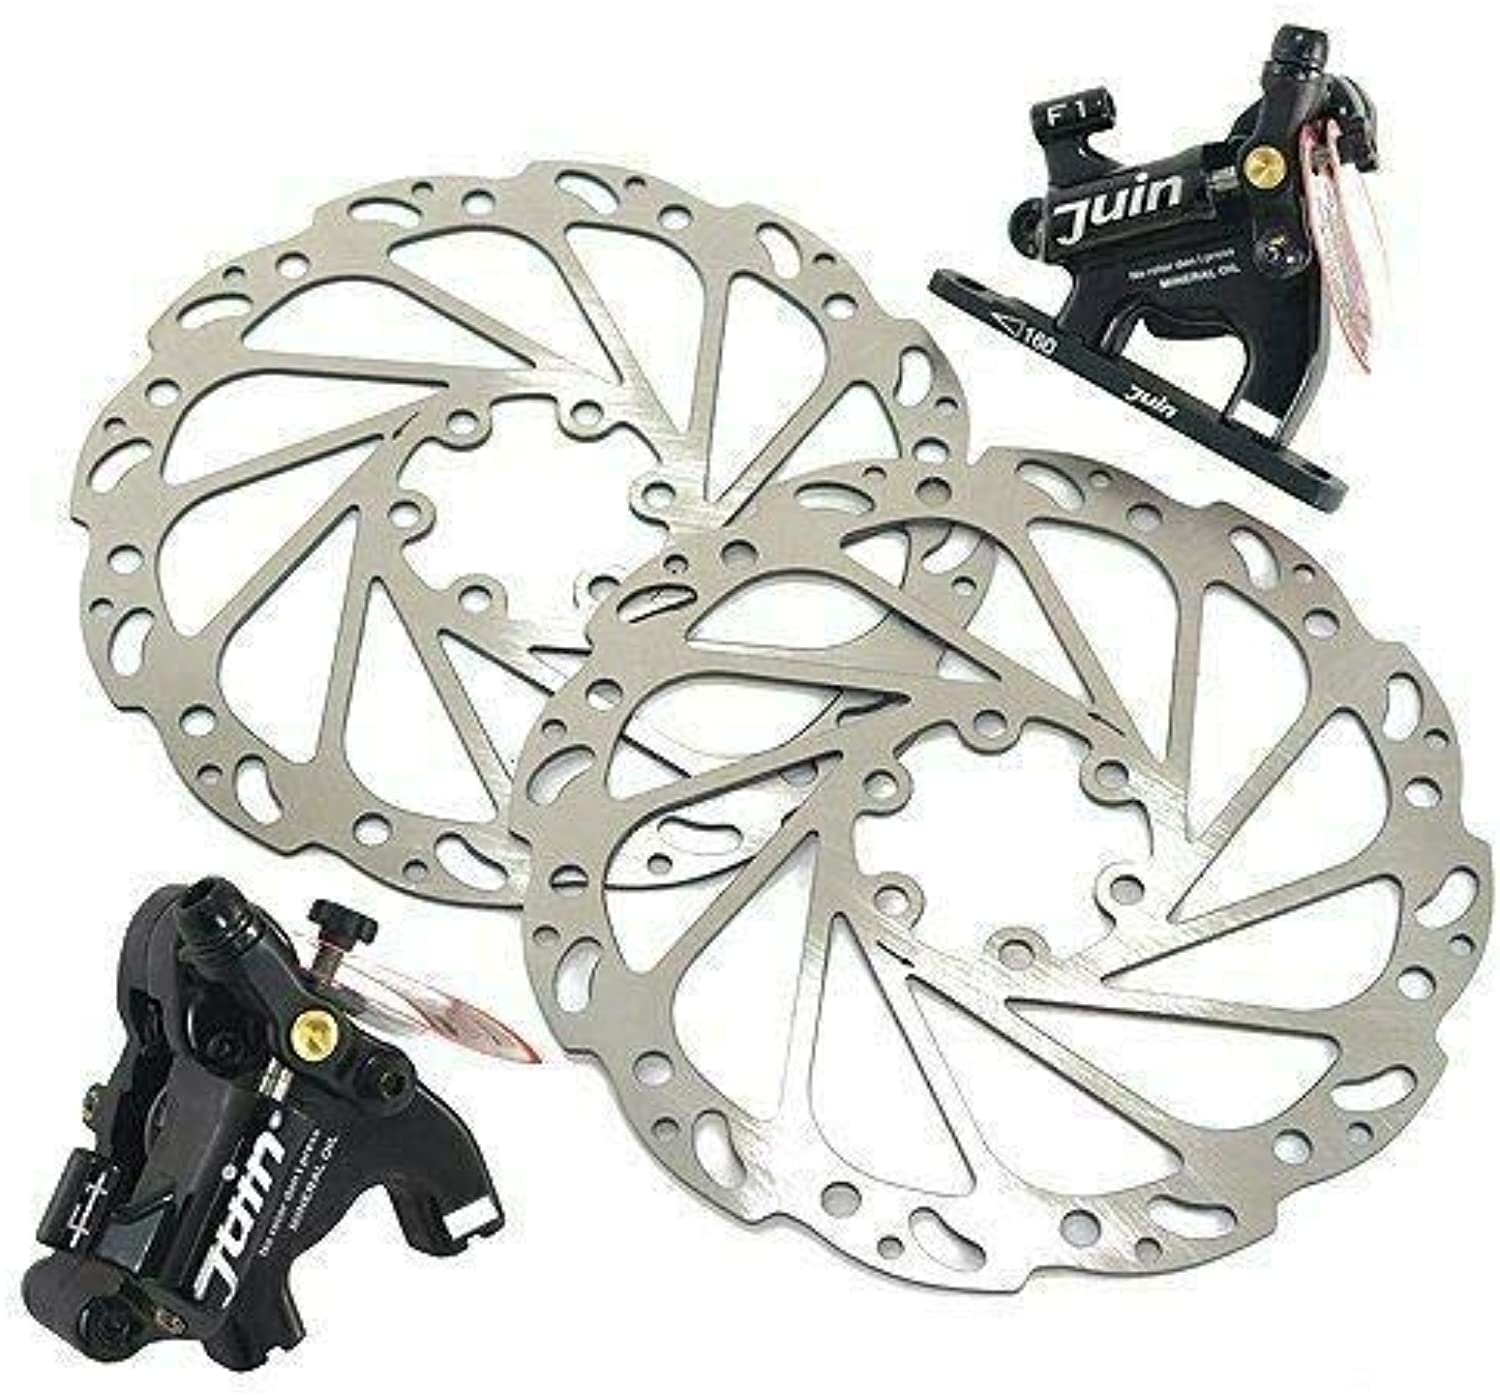 JUIN TECH F1 Hydraulic Flat Mount Road CX Disc Brake Set 160mm w redor, Black  JT1691